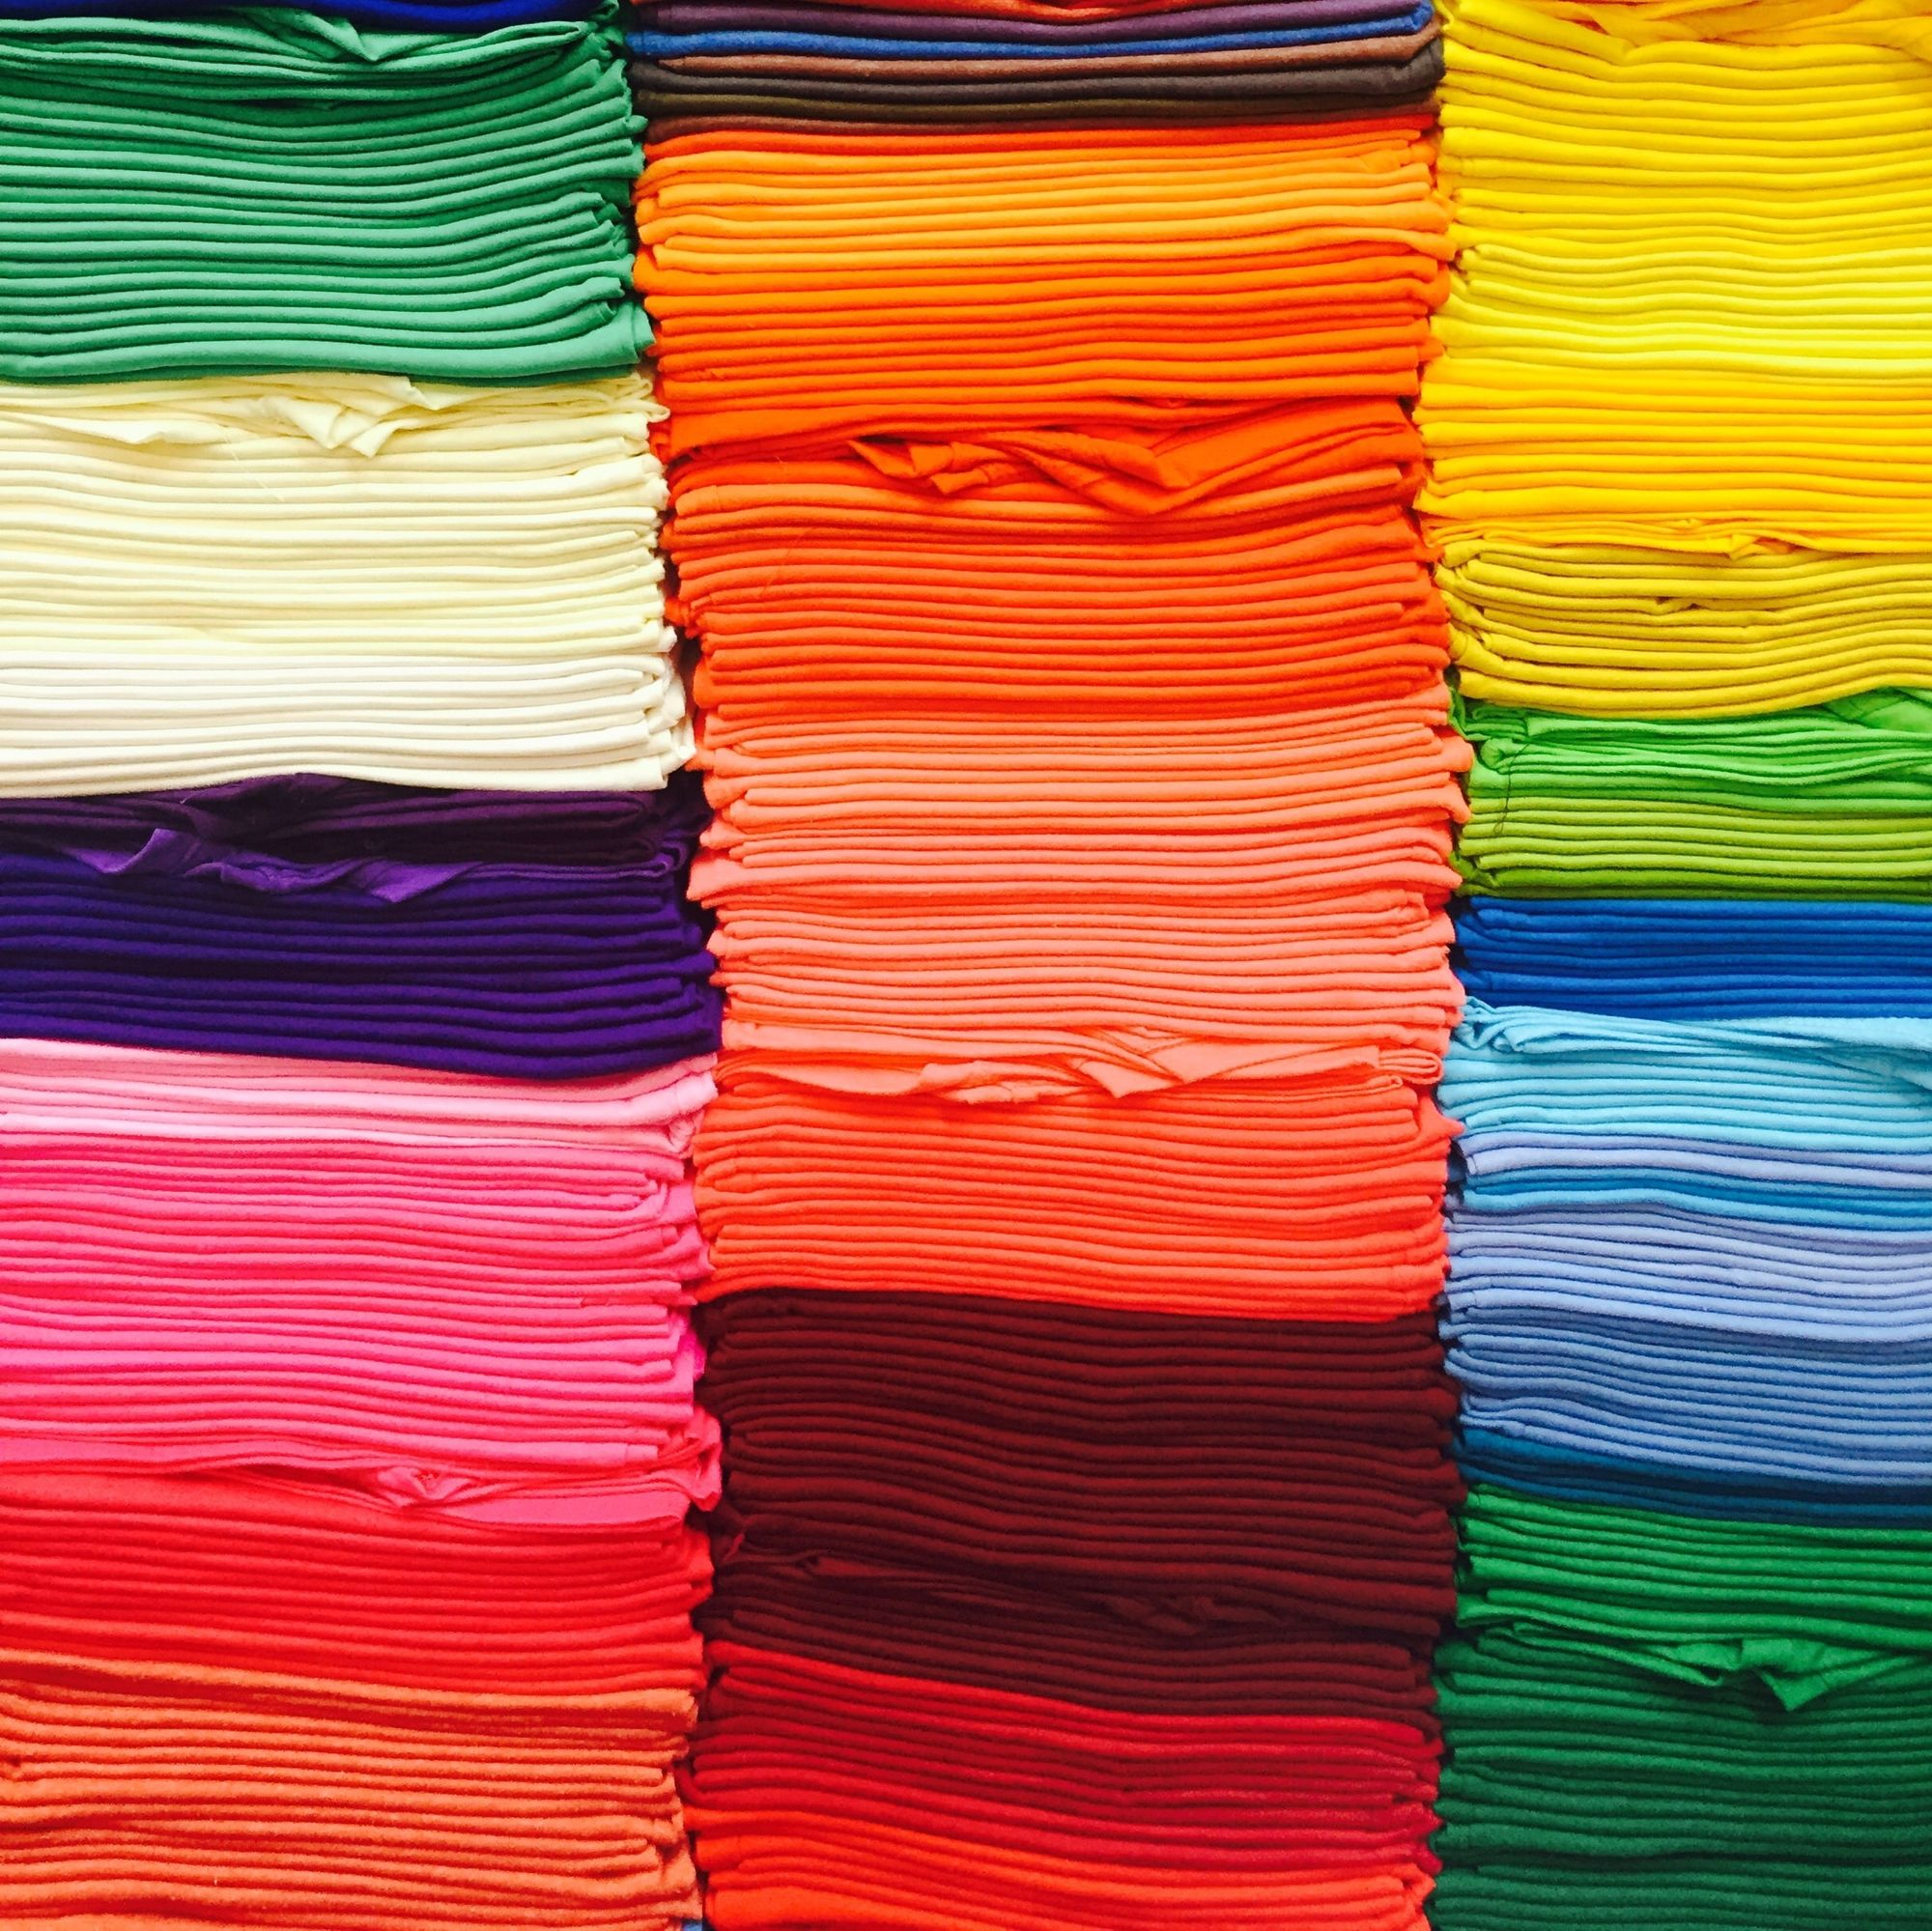 Manage the Inventory of Your T-shirt Business